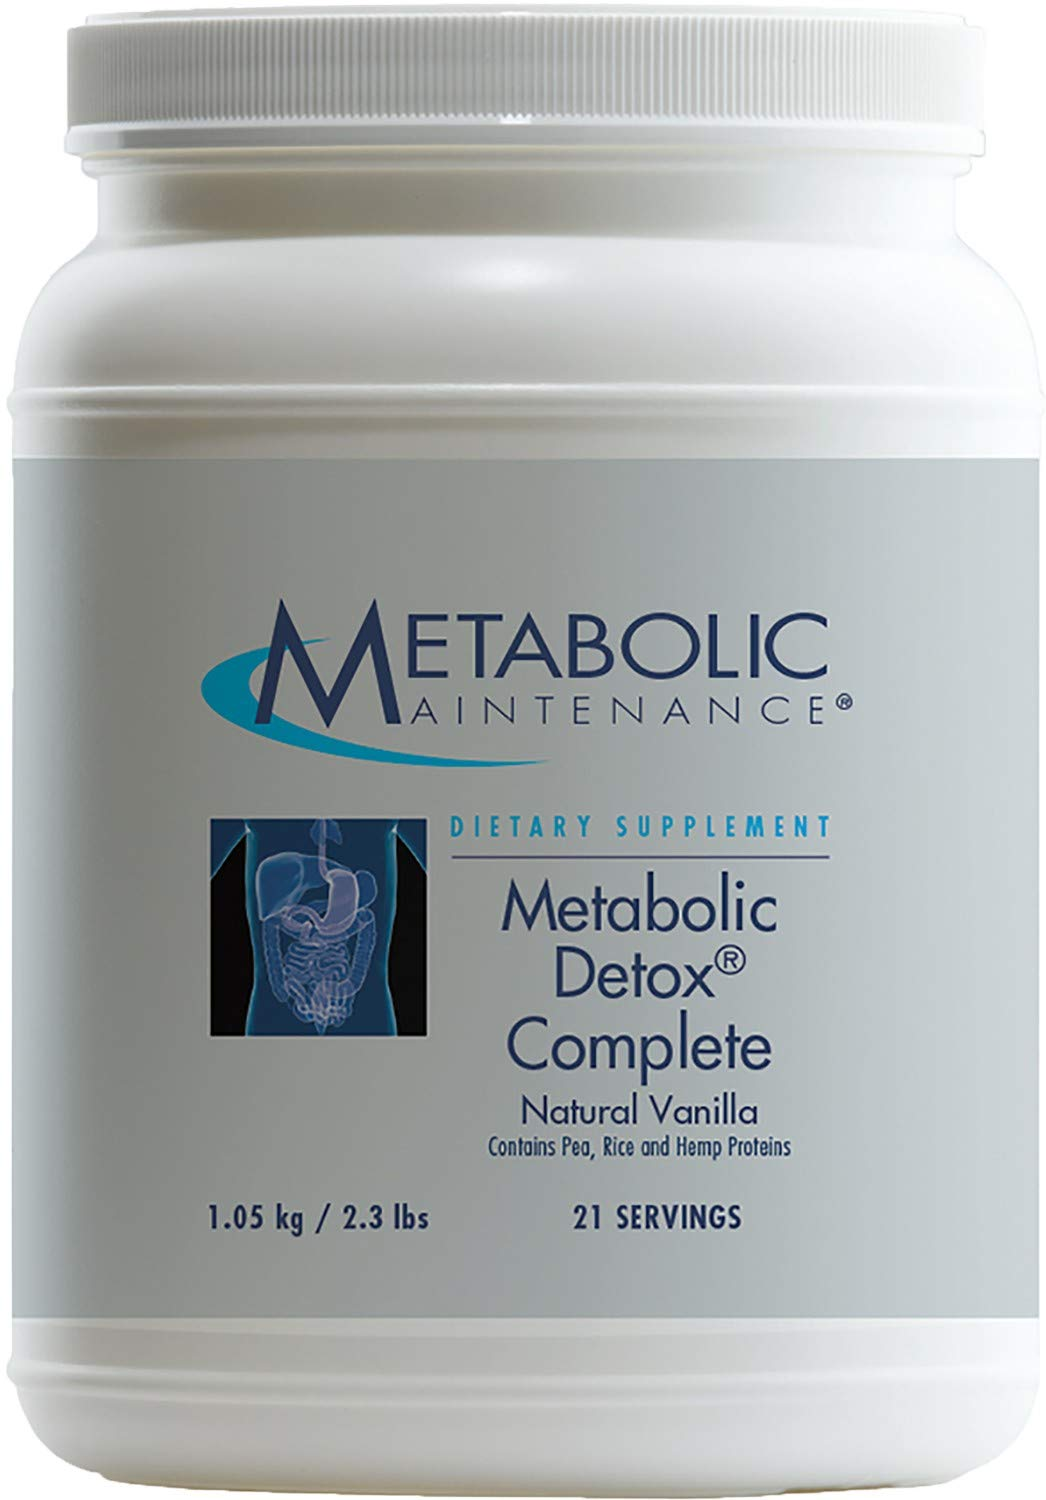 Metabolic Maintenance - Metabolic Detox Complete Vanilla - Cleansing Support Powder, 2.3 lbs